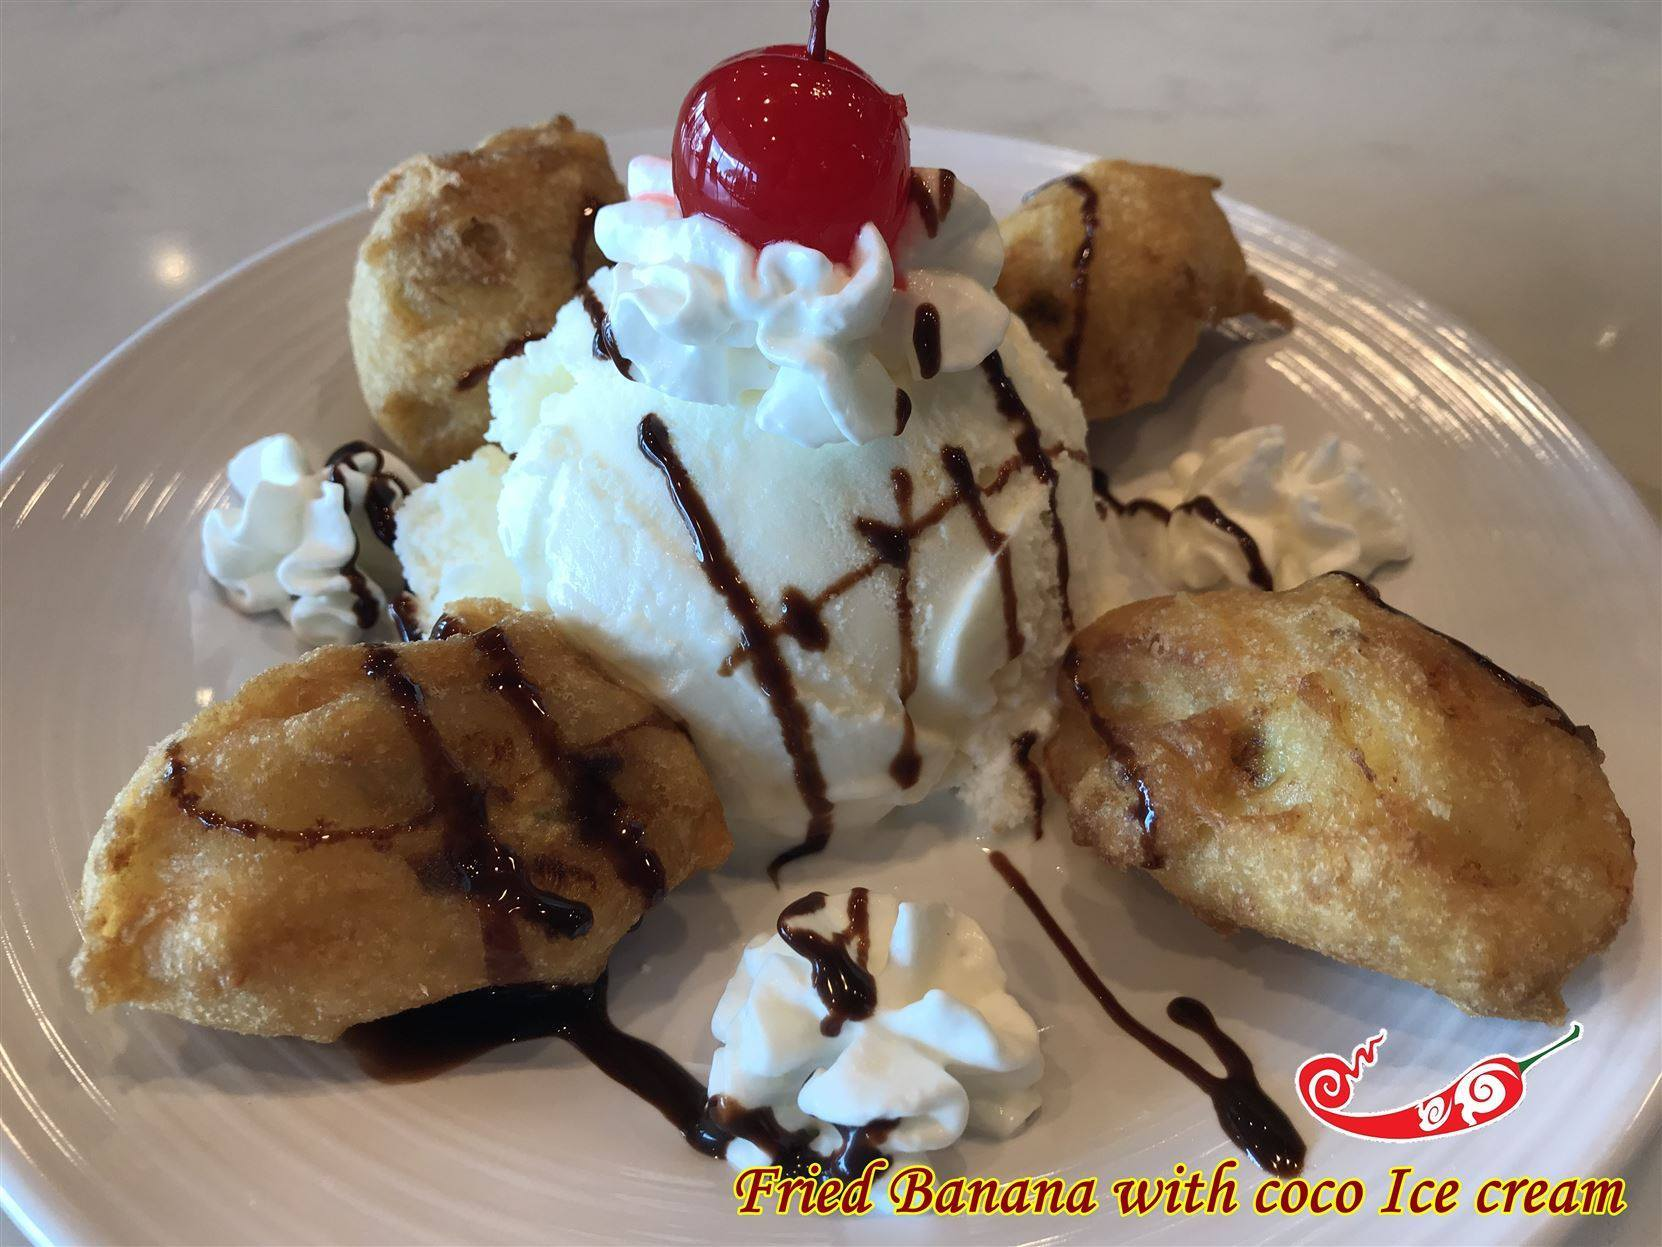 Ice cream fried banana Image